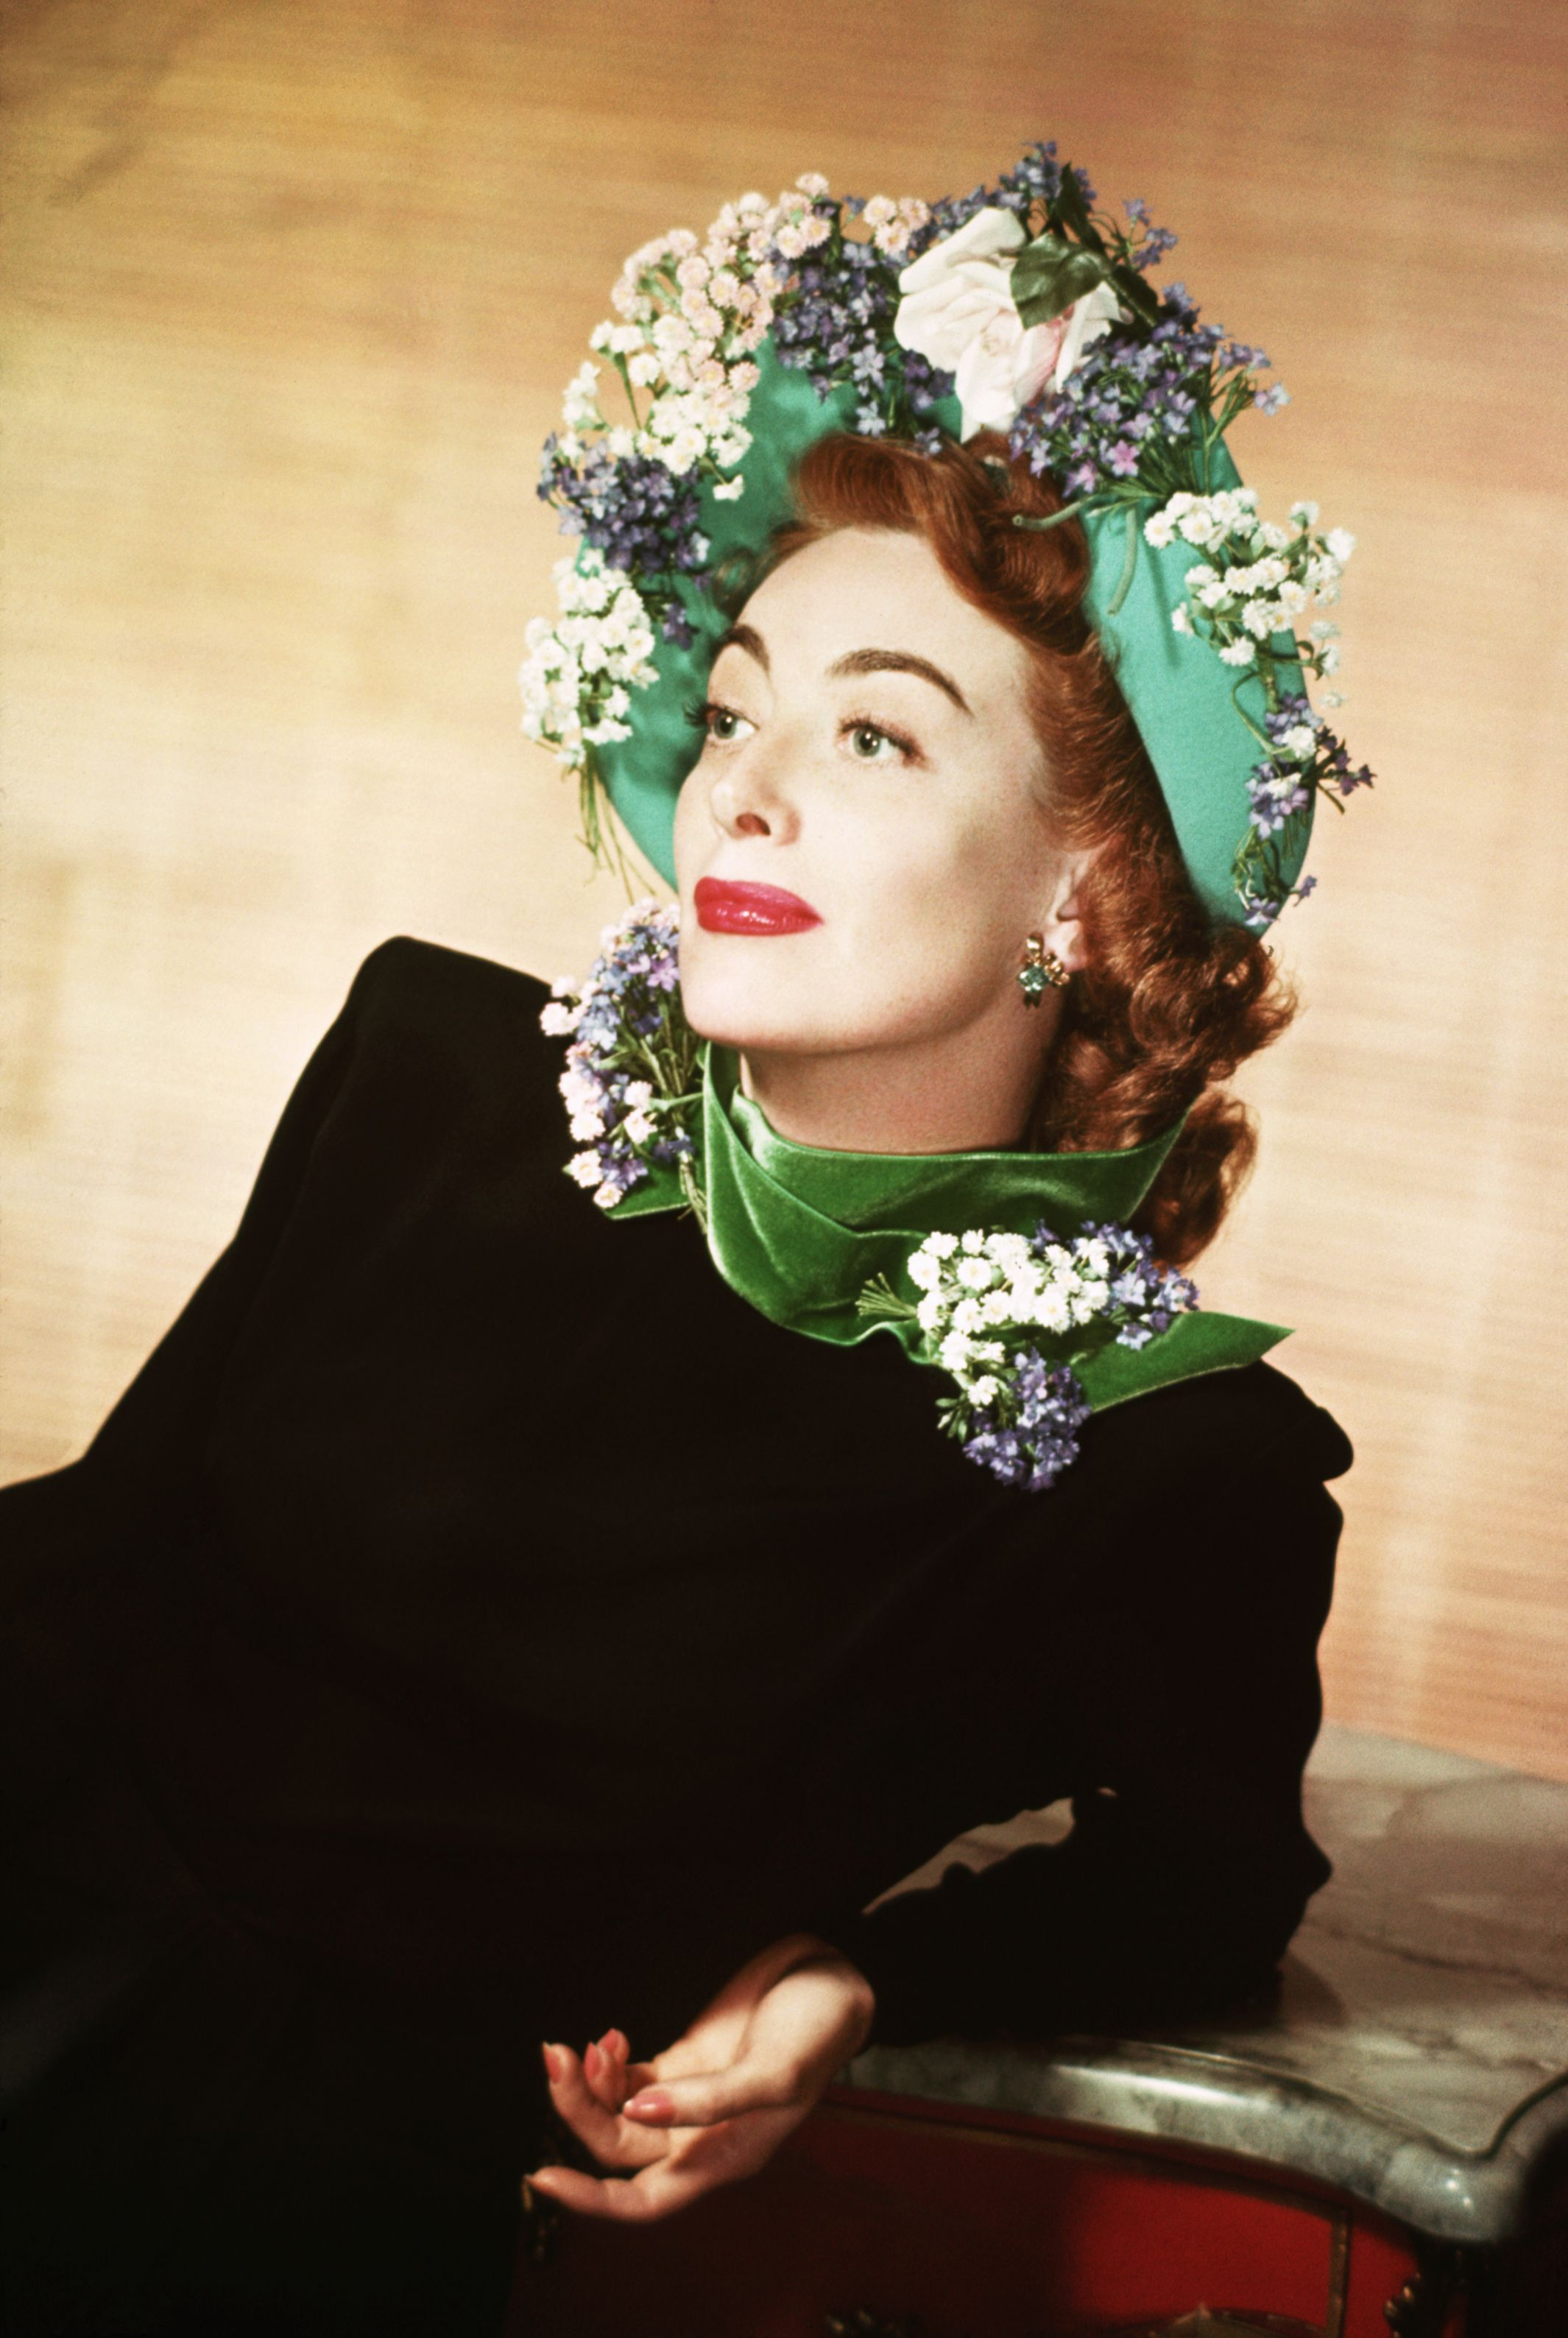 40 Rare Photos of Joan Crawford You've Probably Never Seen